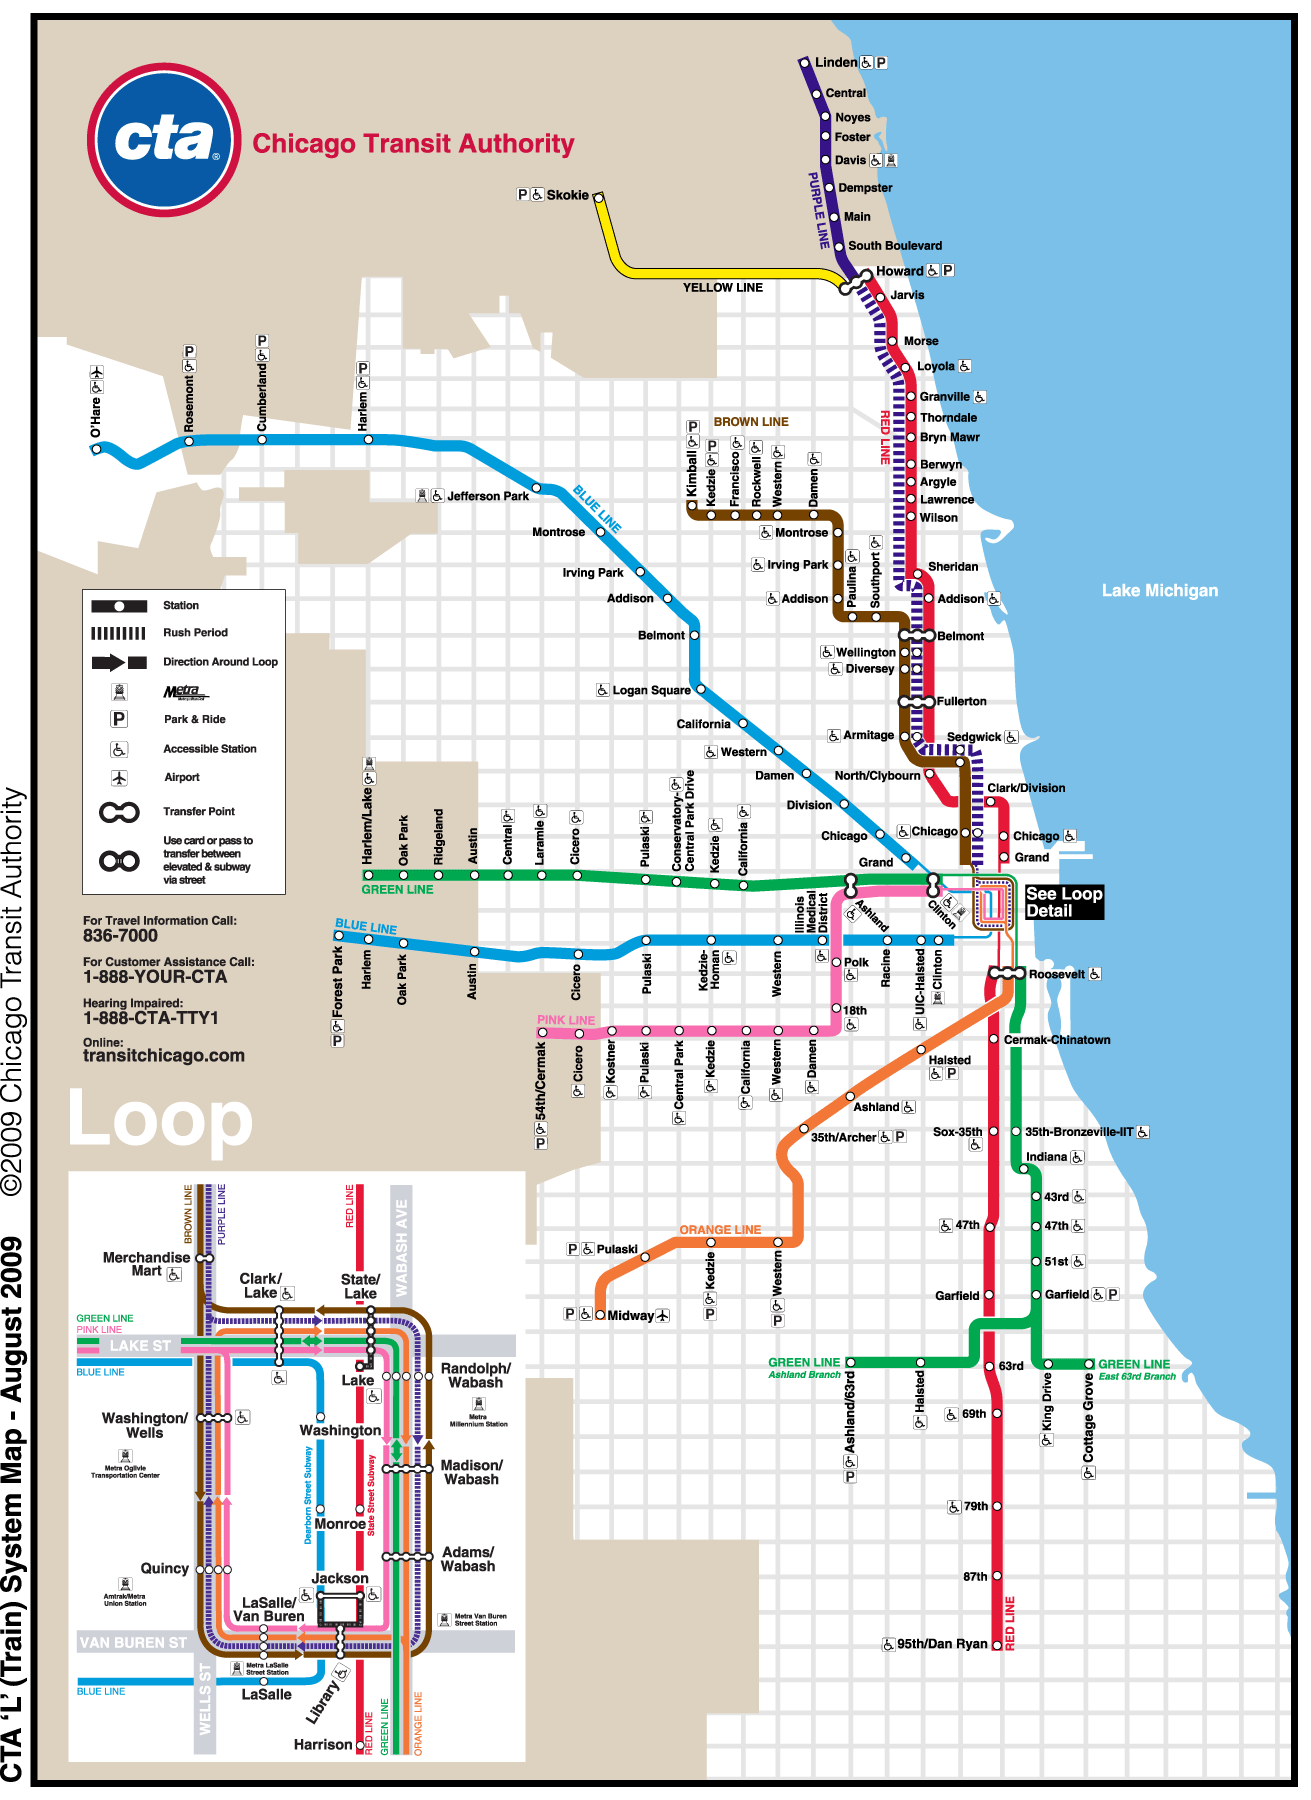 Metro Chicago Map Chicago Metro Map (subway) • Mapsof.net